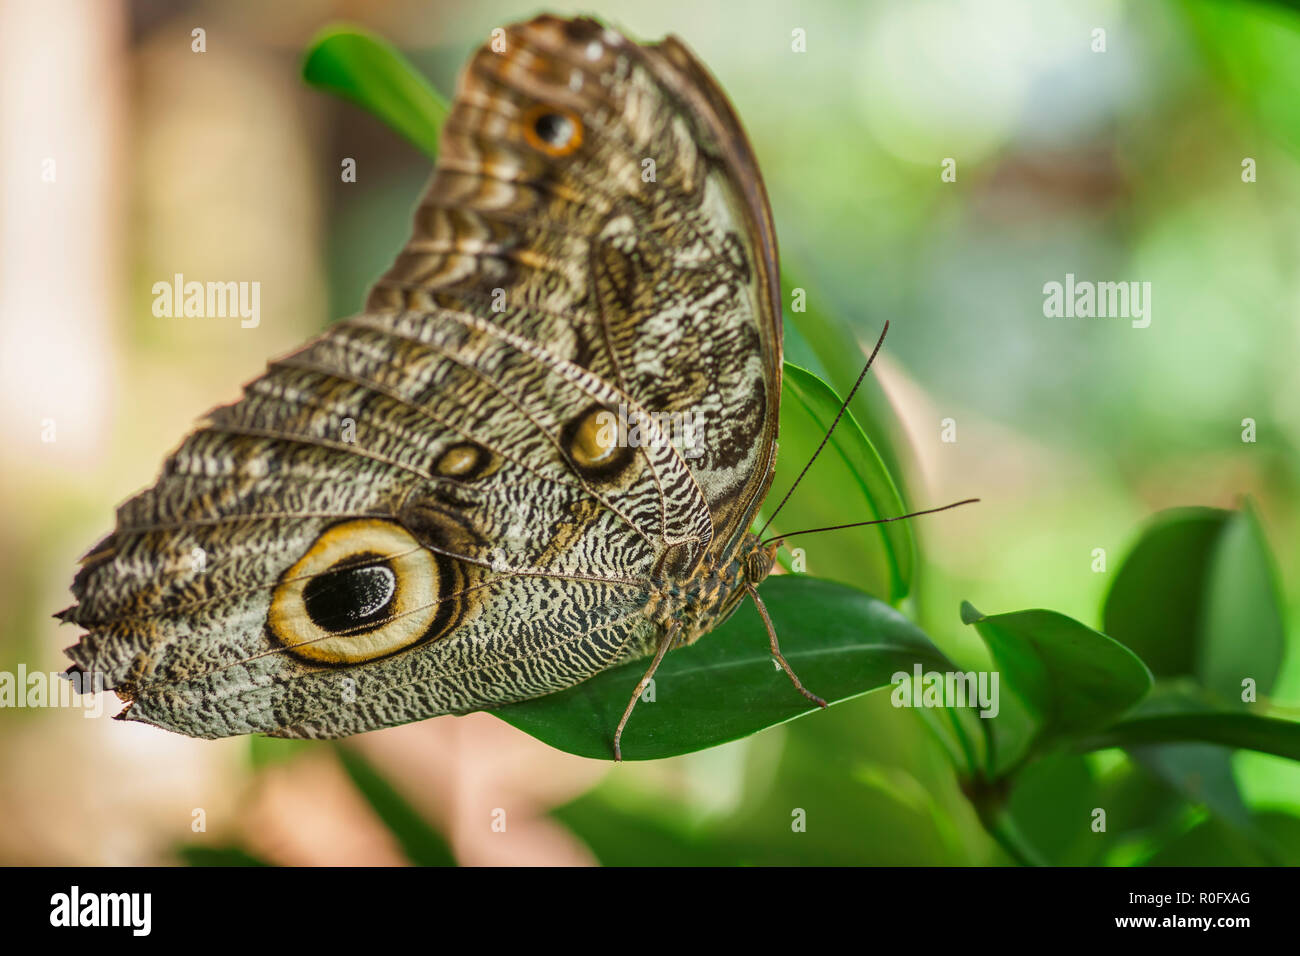 Laterally backward close-up of a banana flater (lat: Caligo beltrao) with folded wings sitting on a green oval leaf against light background. - Stock Image